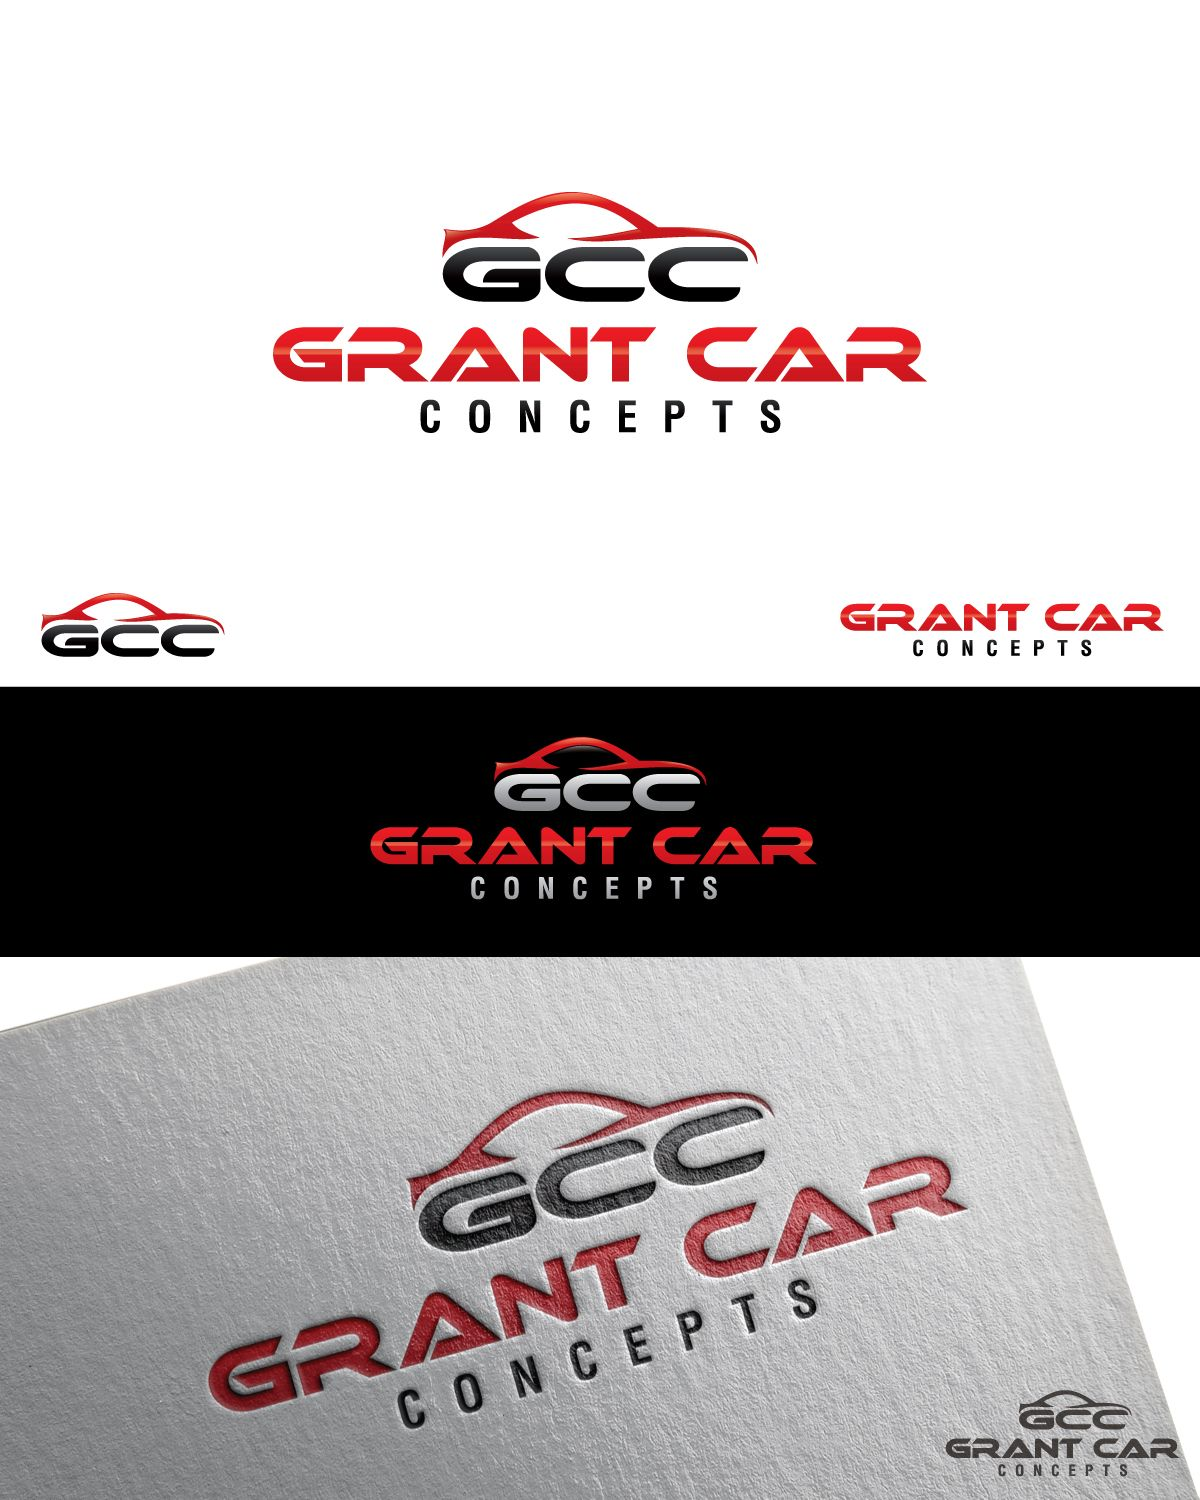 Design for a used car dealership Logo/Name Masculine